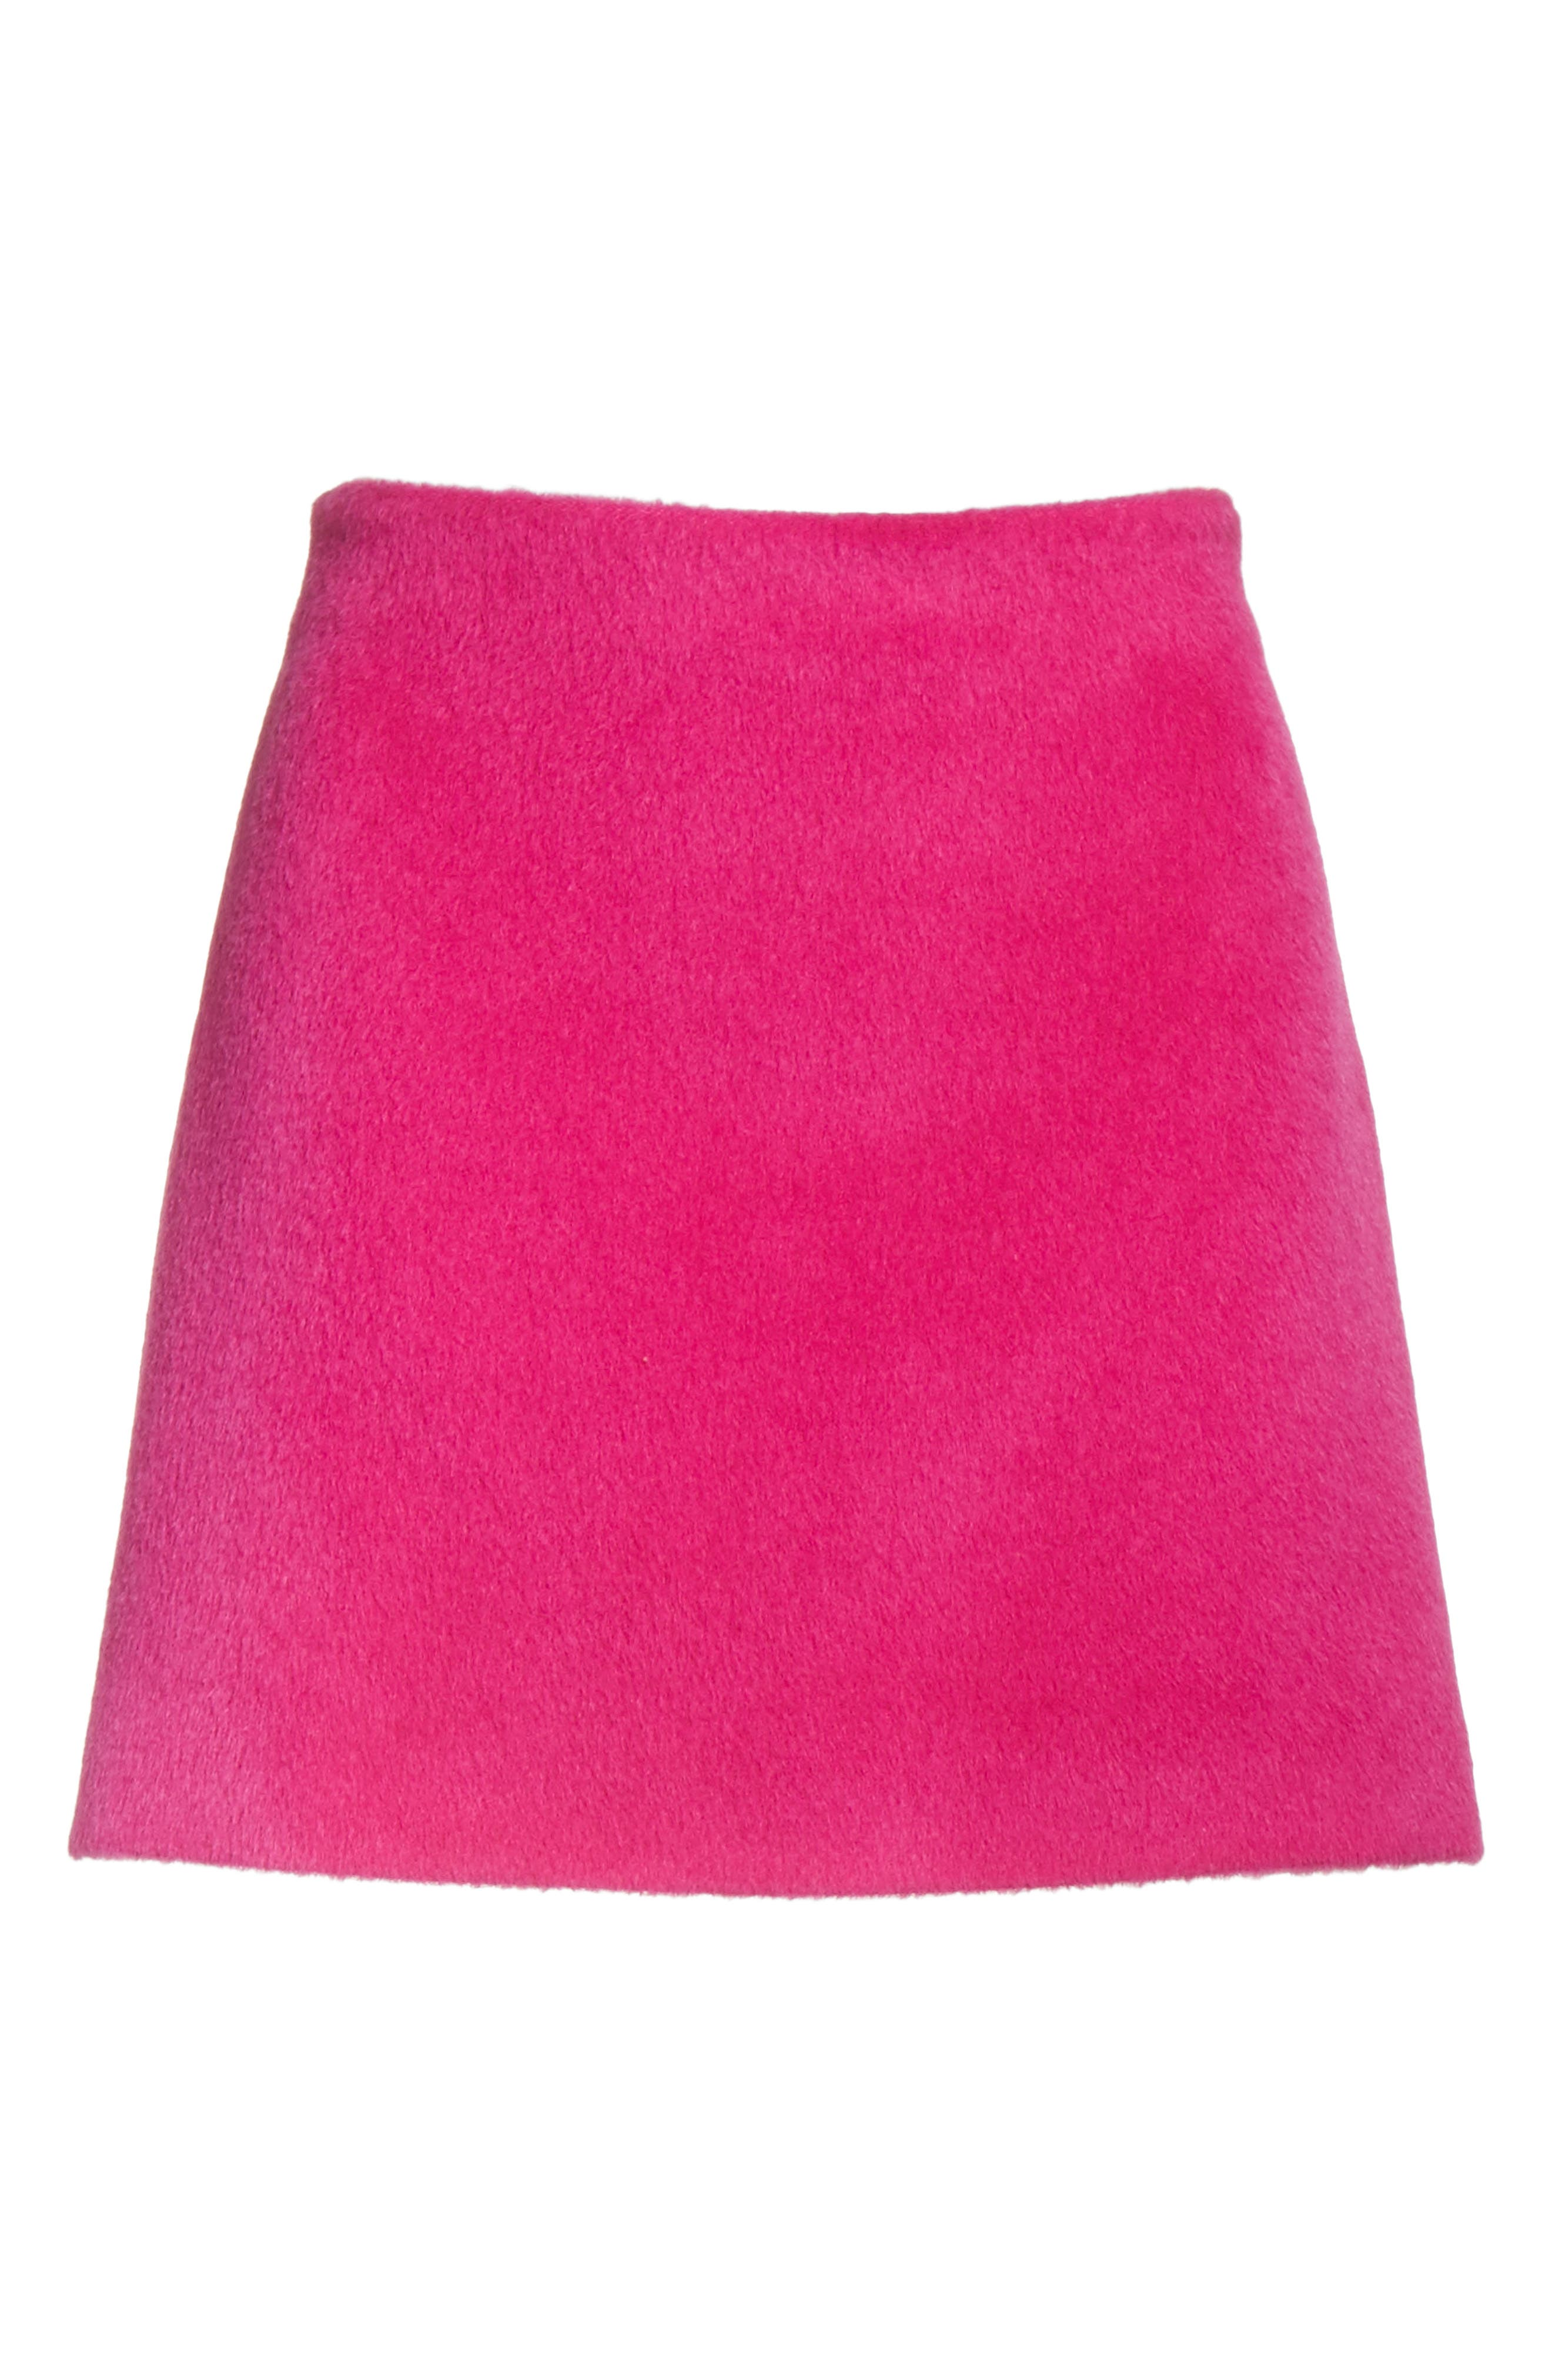 Re-Edition Brushed Alpaca & Wool Skirt,                             Alternate thumbnail 6, color,